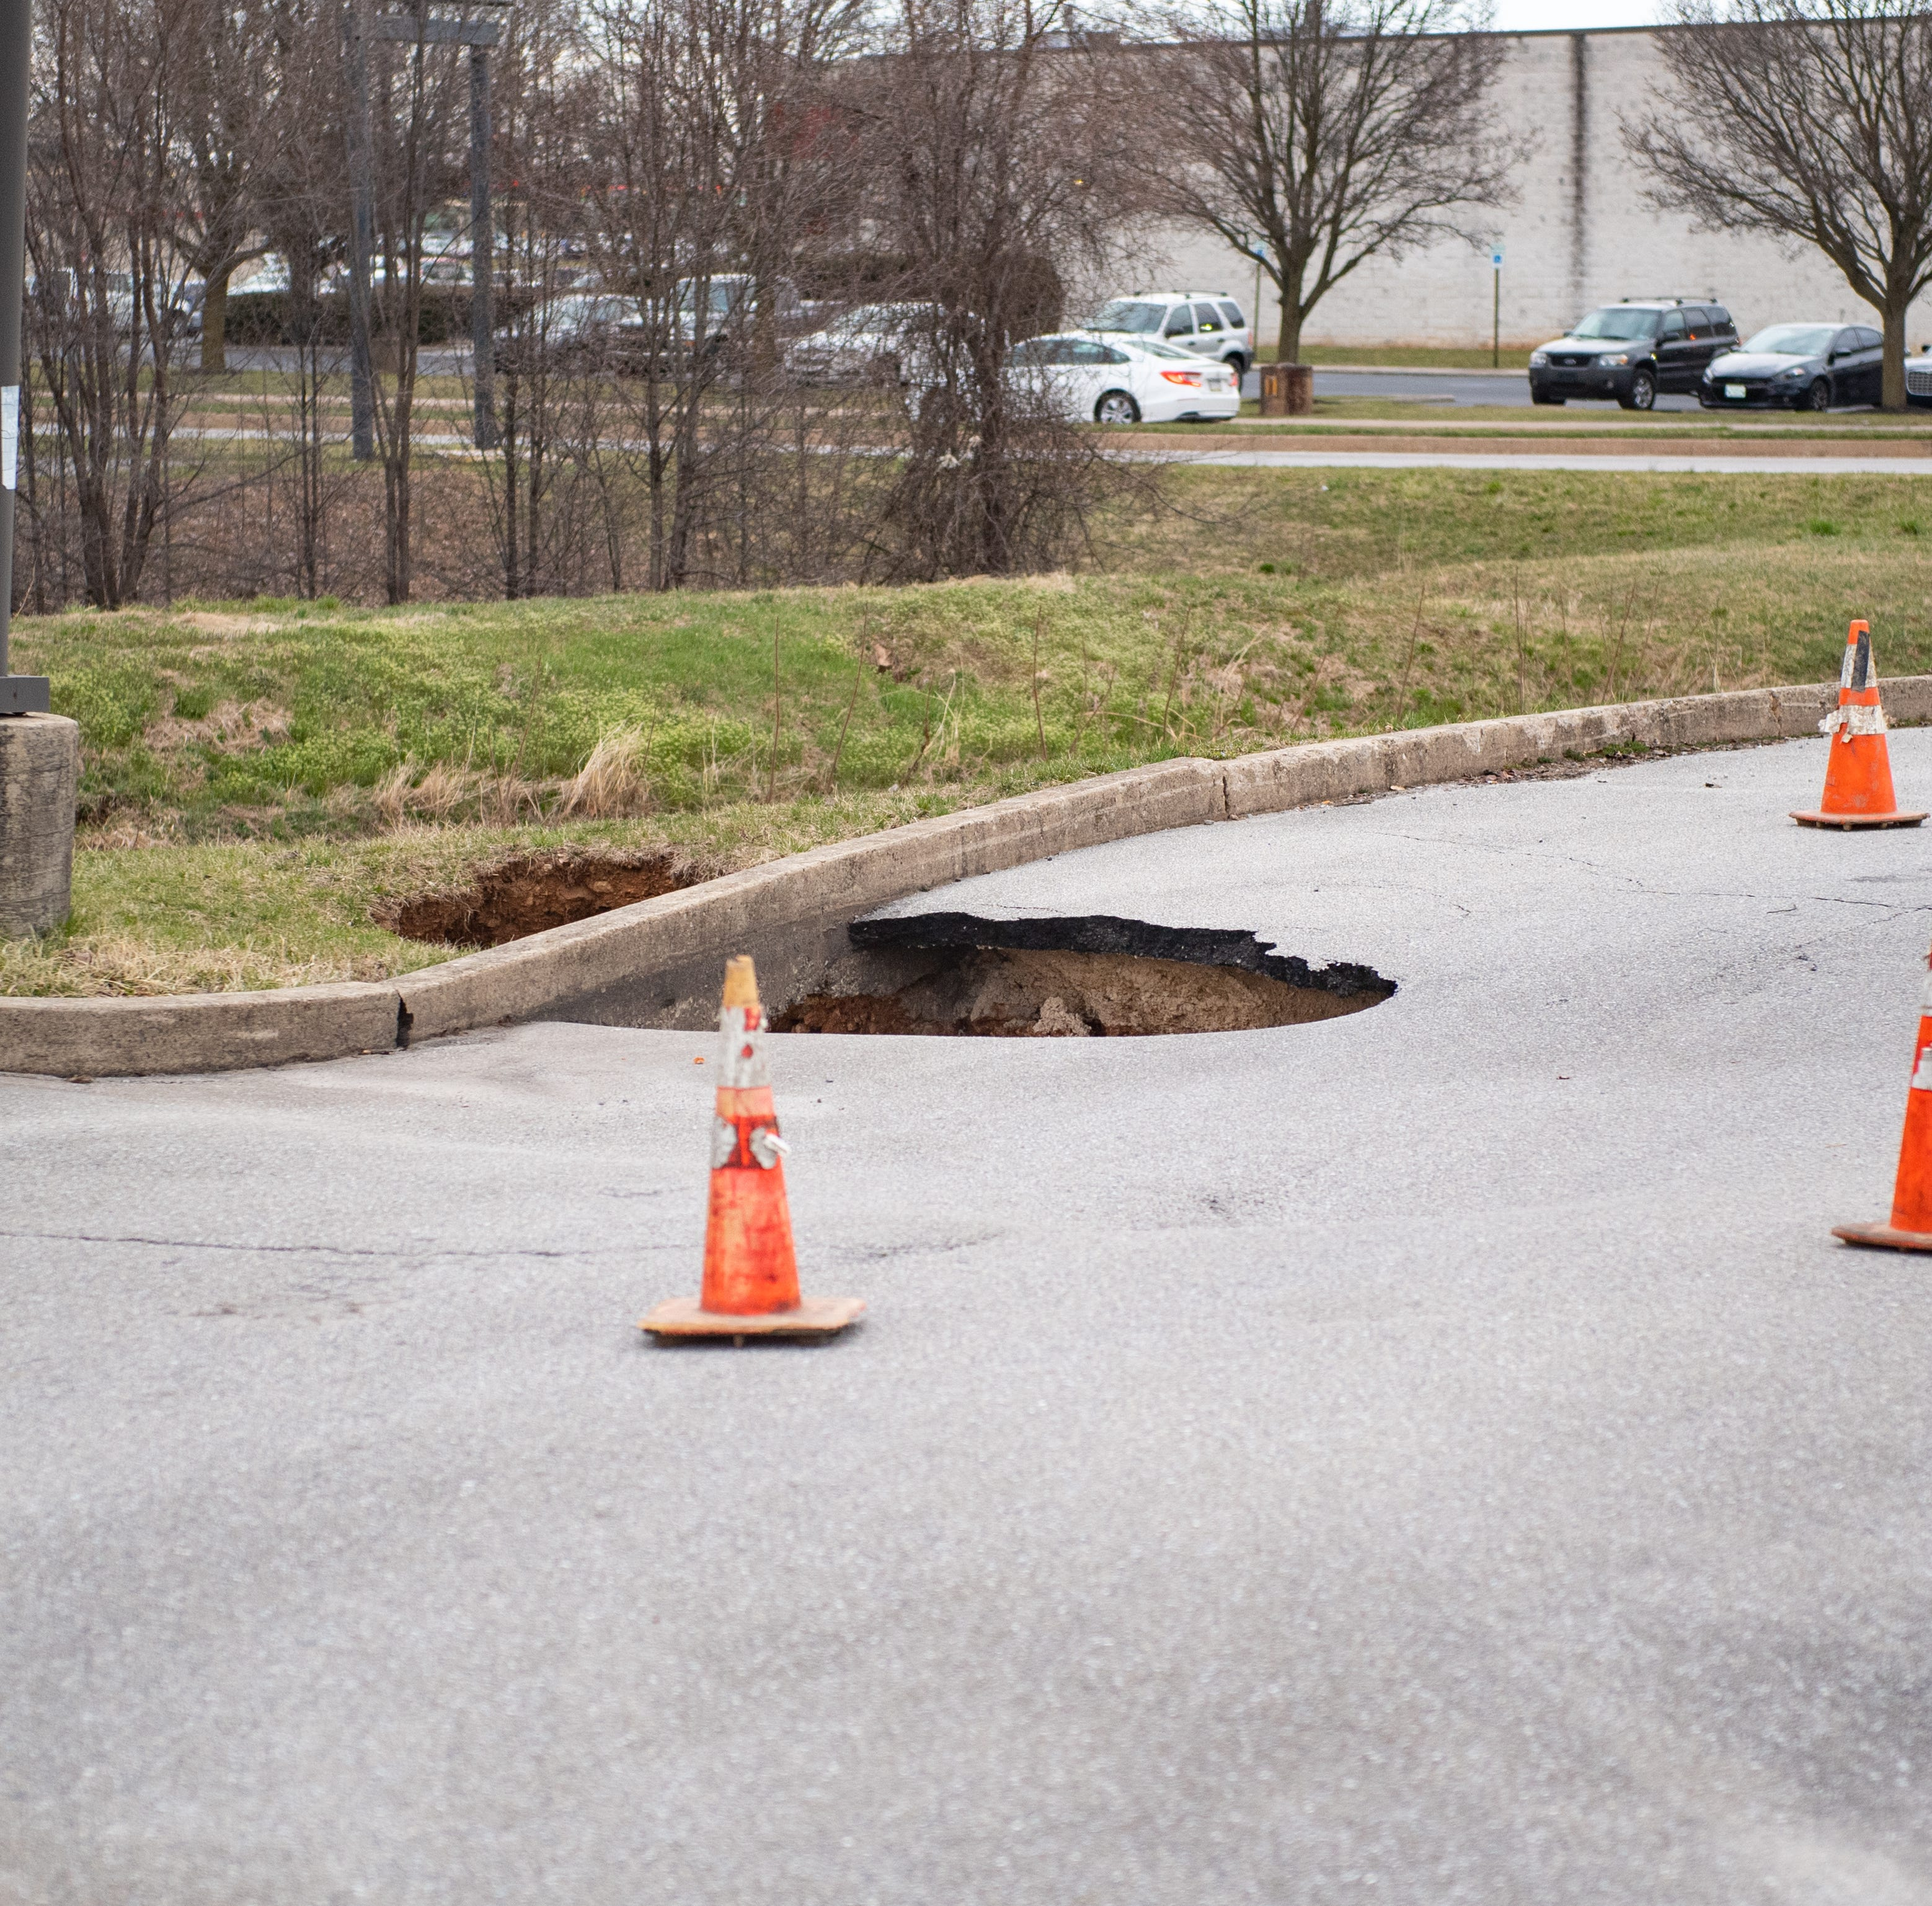 Here's why there are so many sinkholes around the West Manchester Town Center